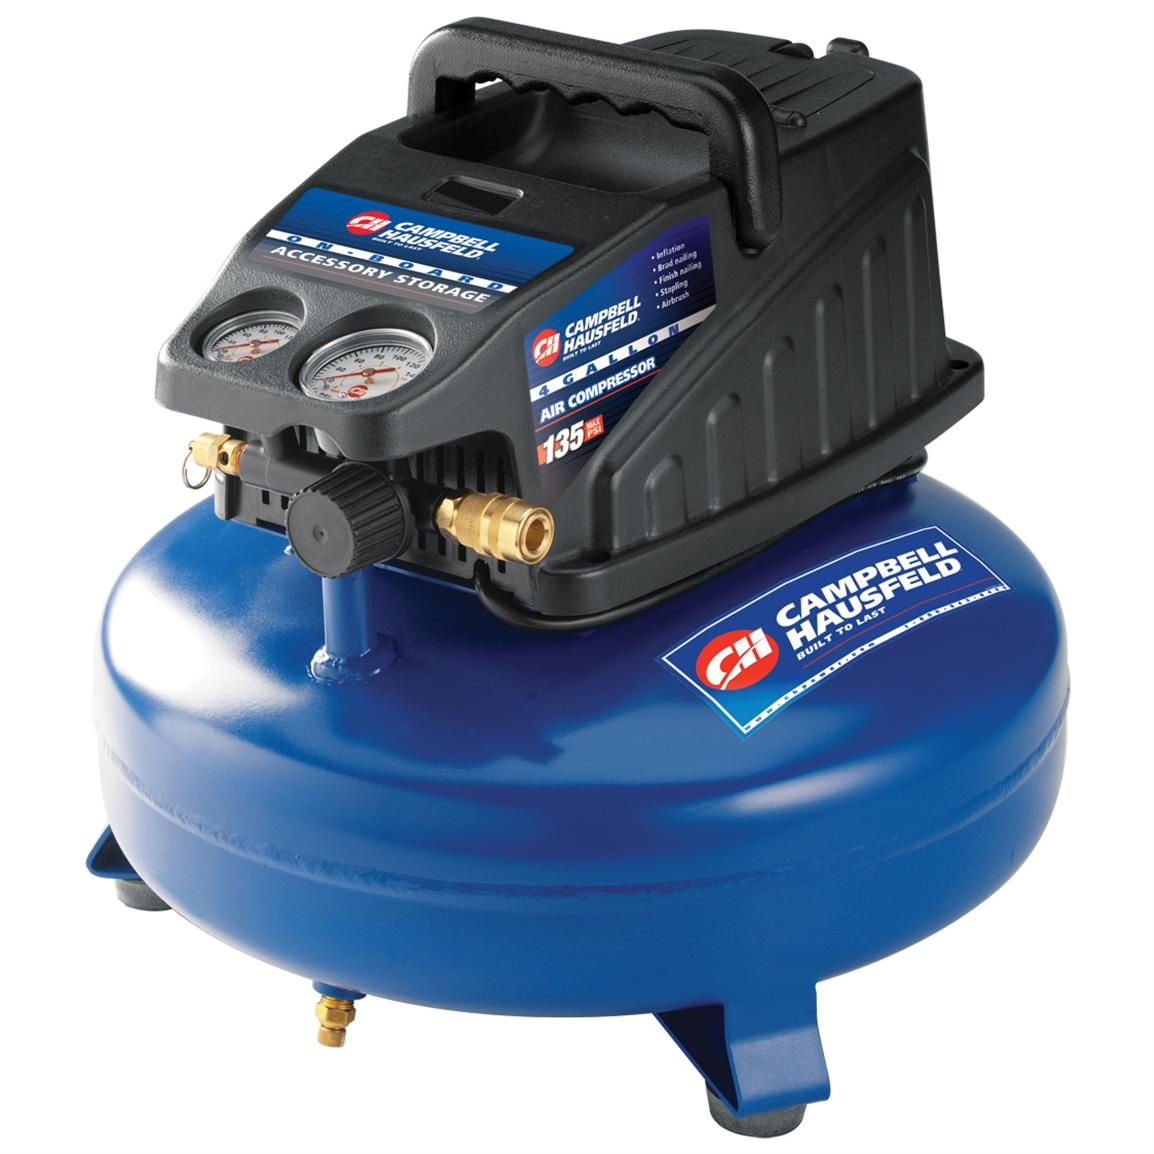 Campbell Hausfeld® 4-gallon Pancake Air Compressor